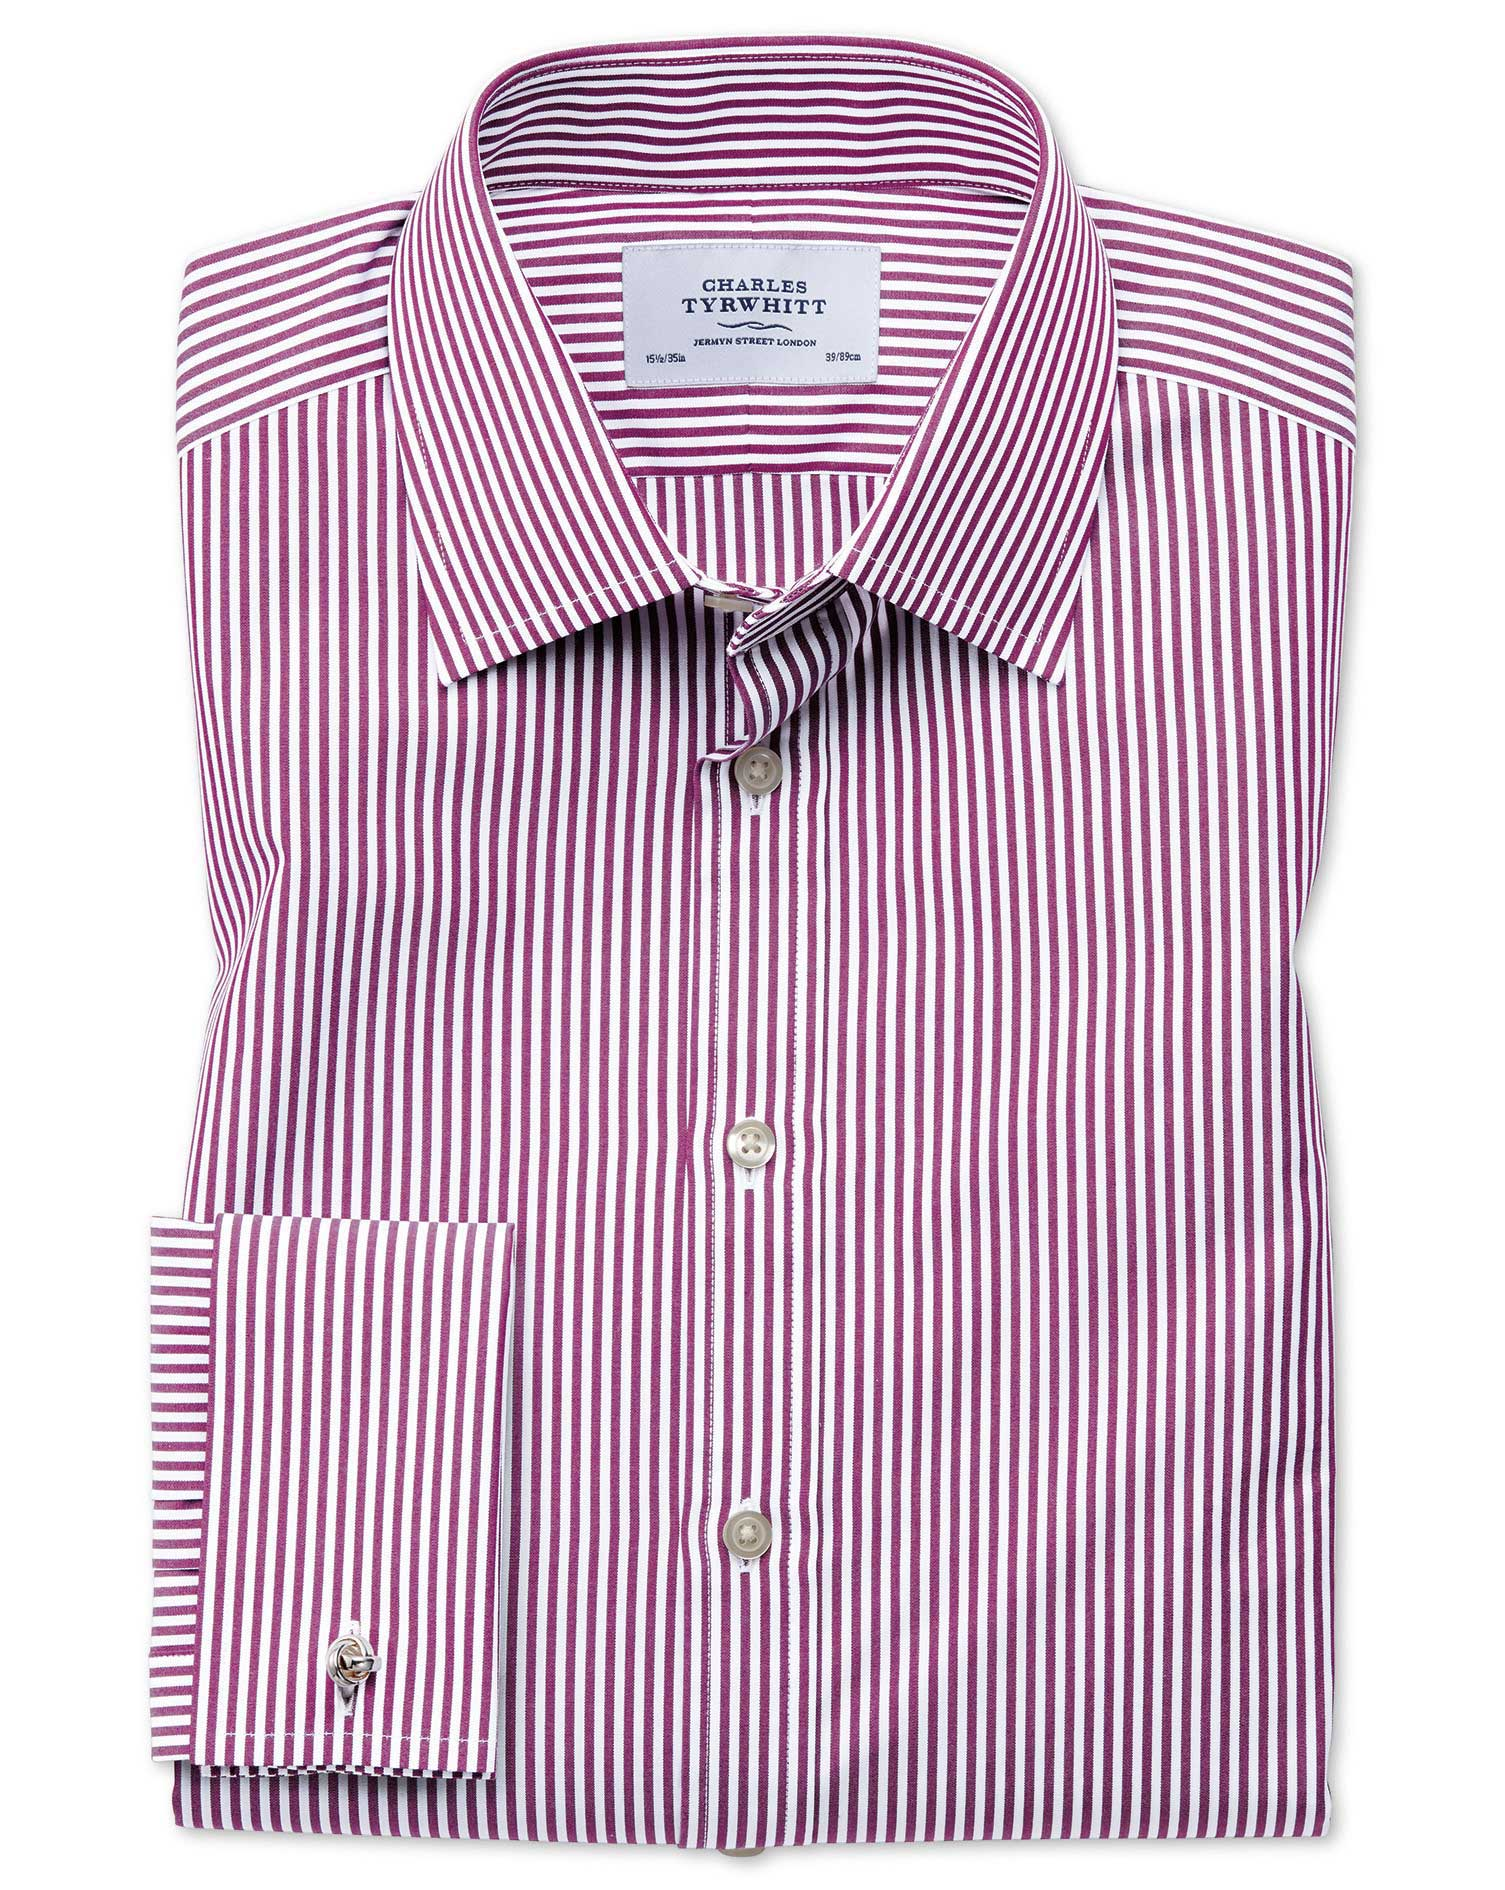 Classic Fit Bengal Stripe Purple Cotton Formal Shirt Single Cuff Size 16/34 by Charles Tyrwhitt